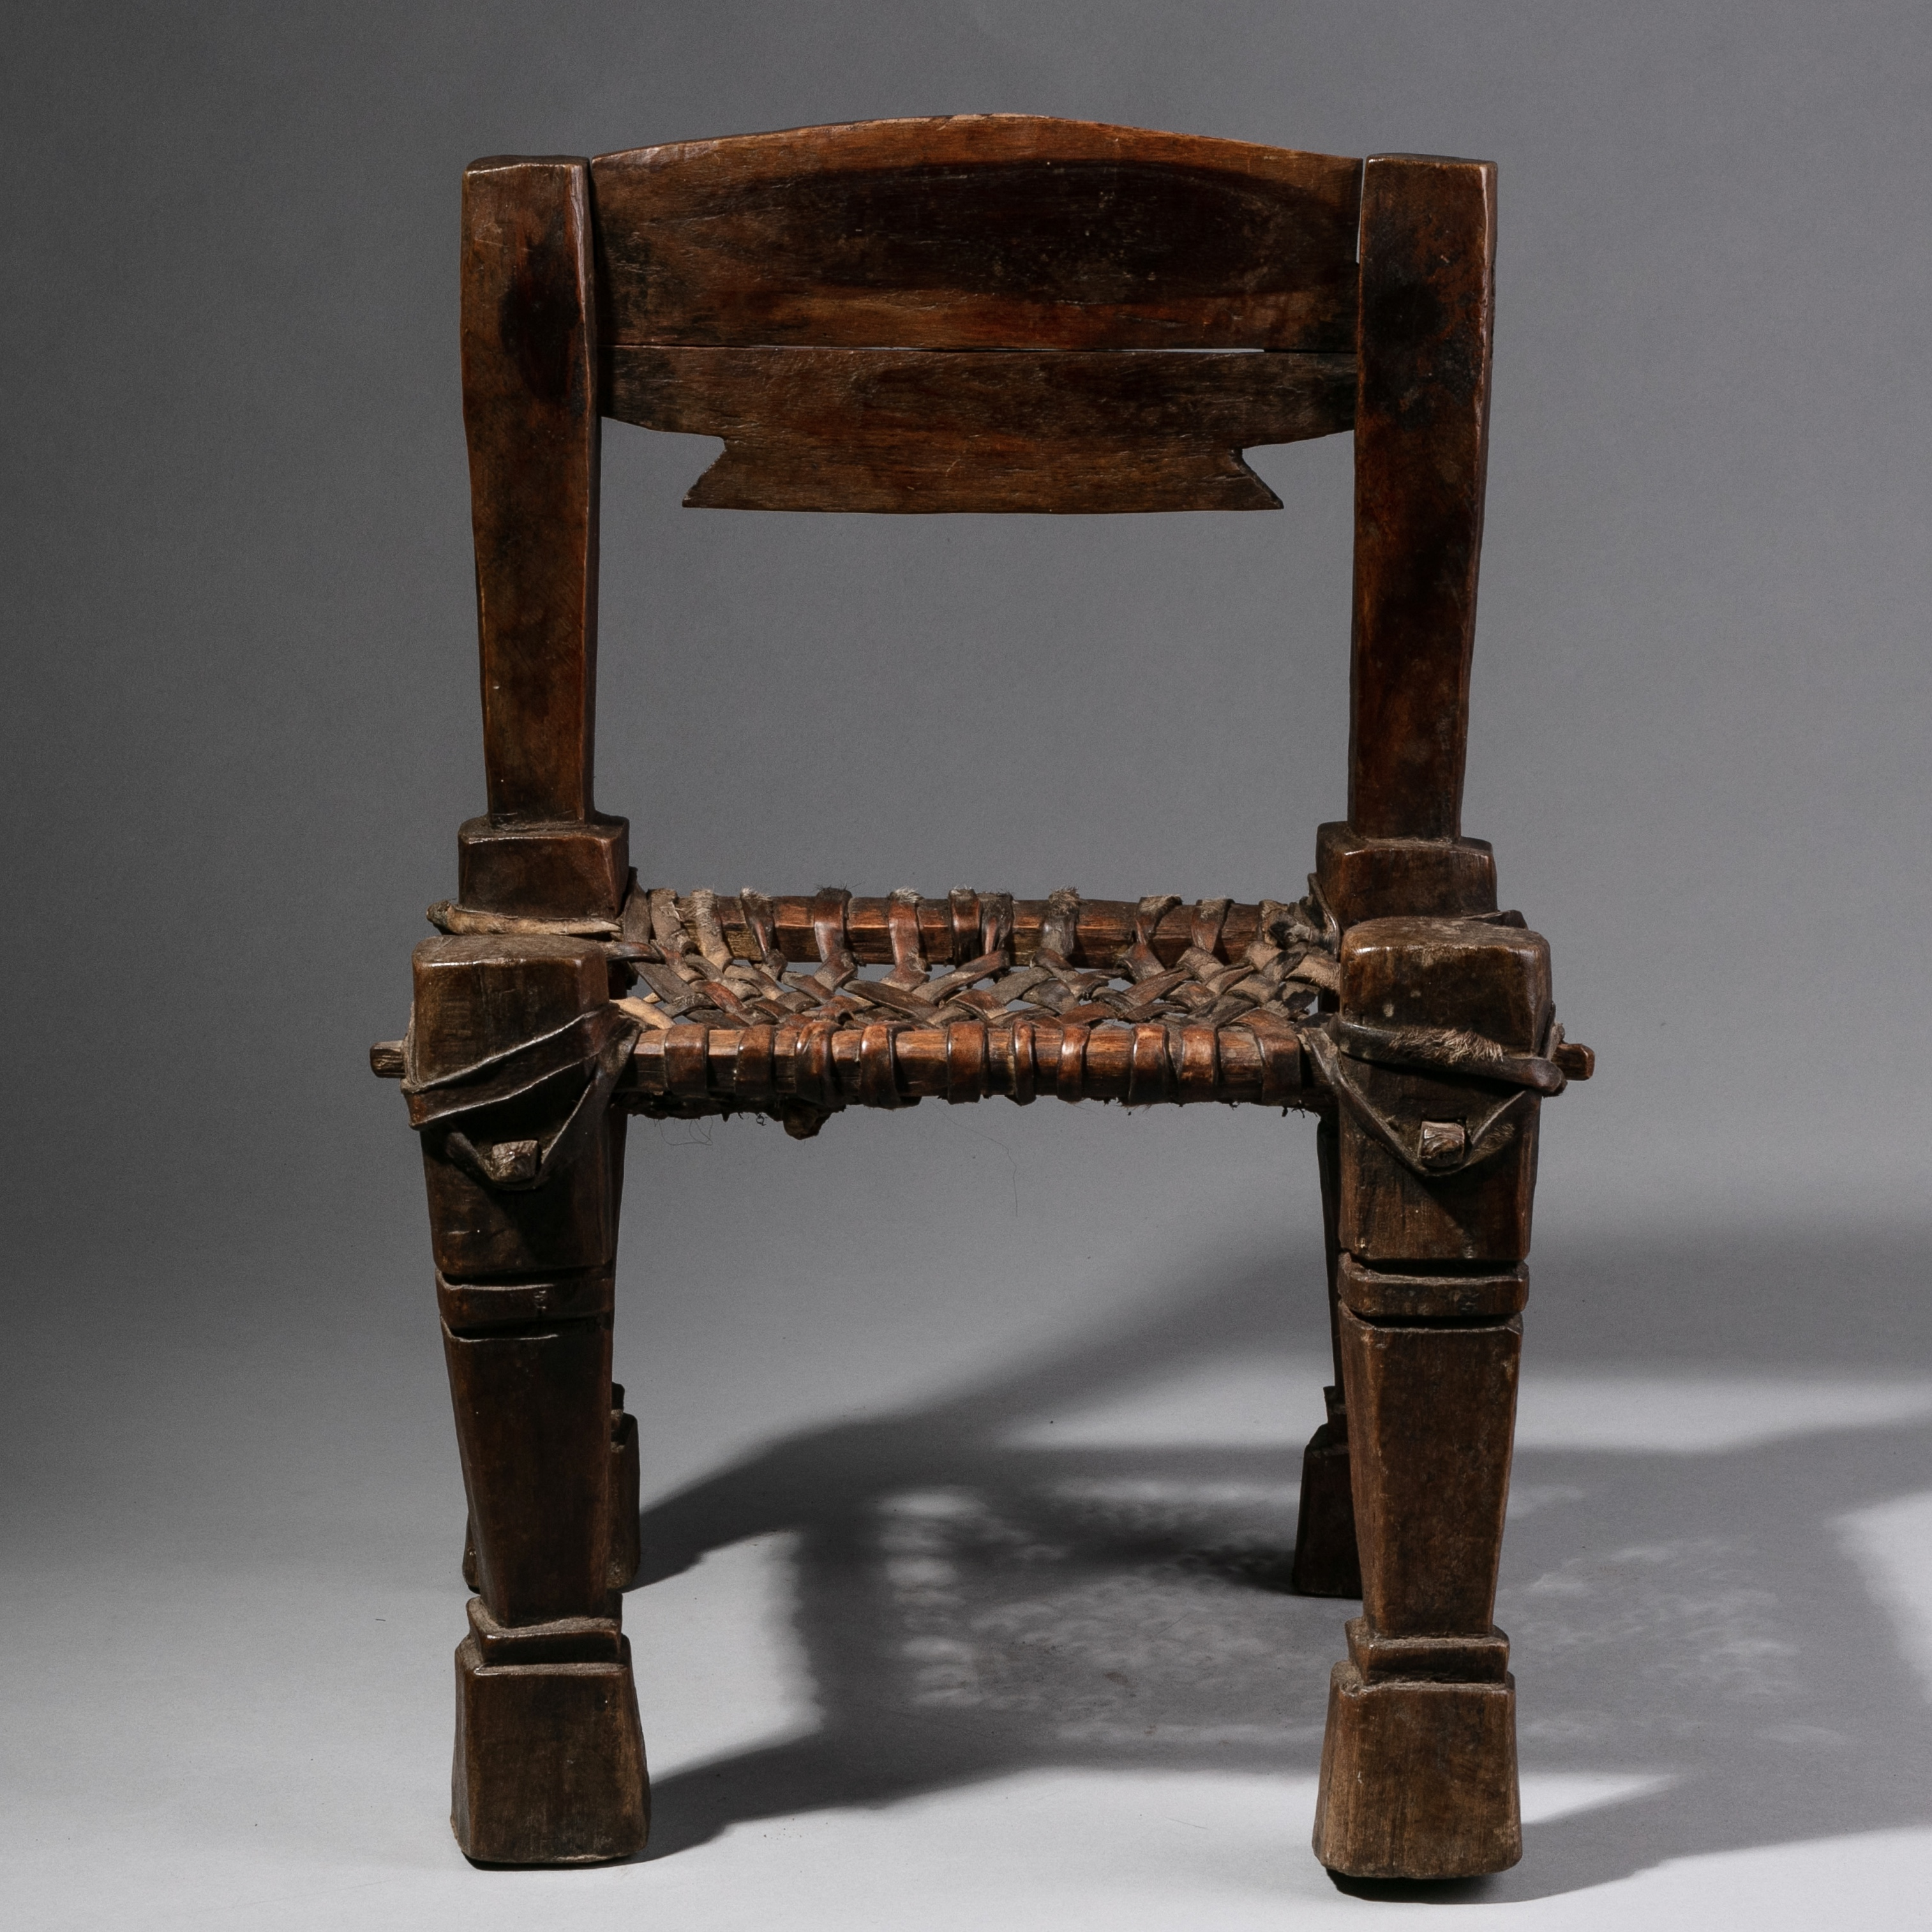 A CHILD SIZED ETHIOPIAN CHAIR WITH WOVEN LEATHER SEAT ( No 1034 )